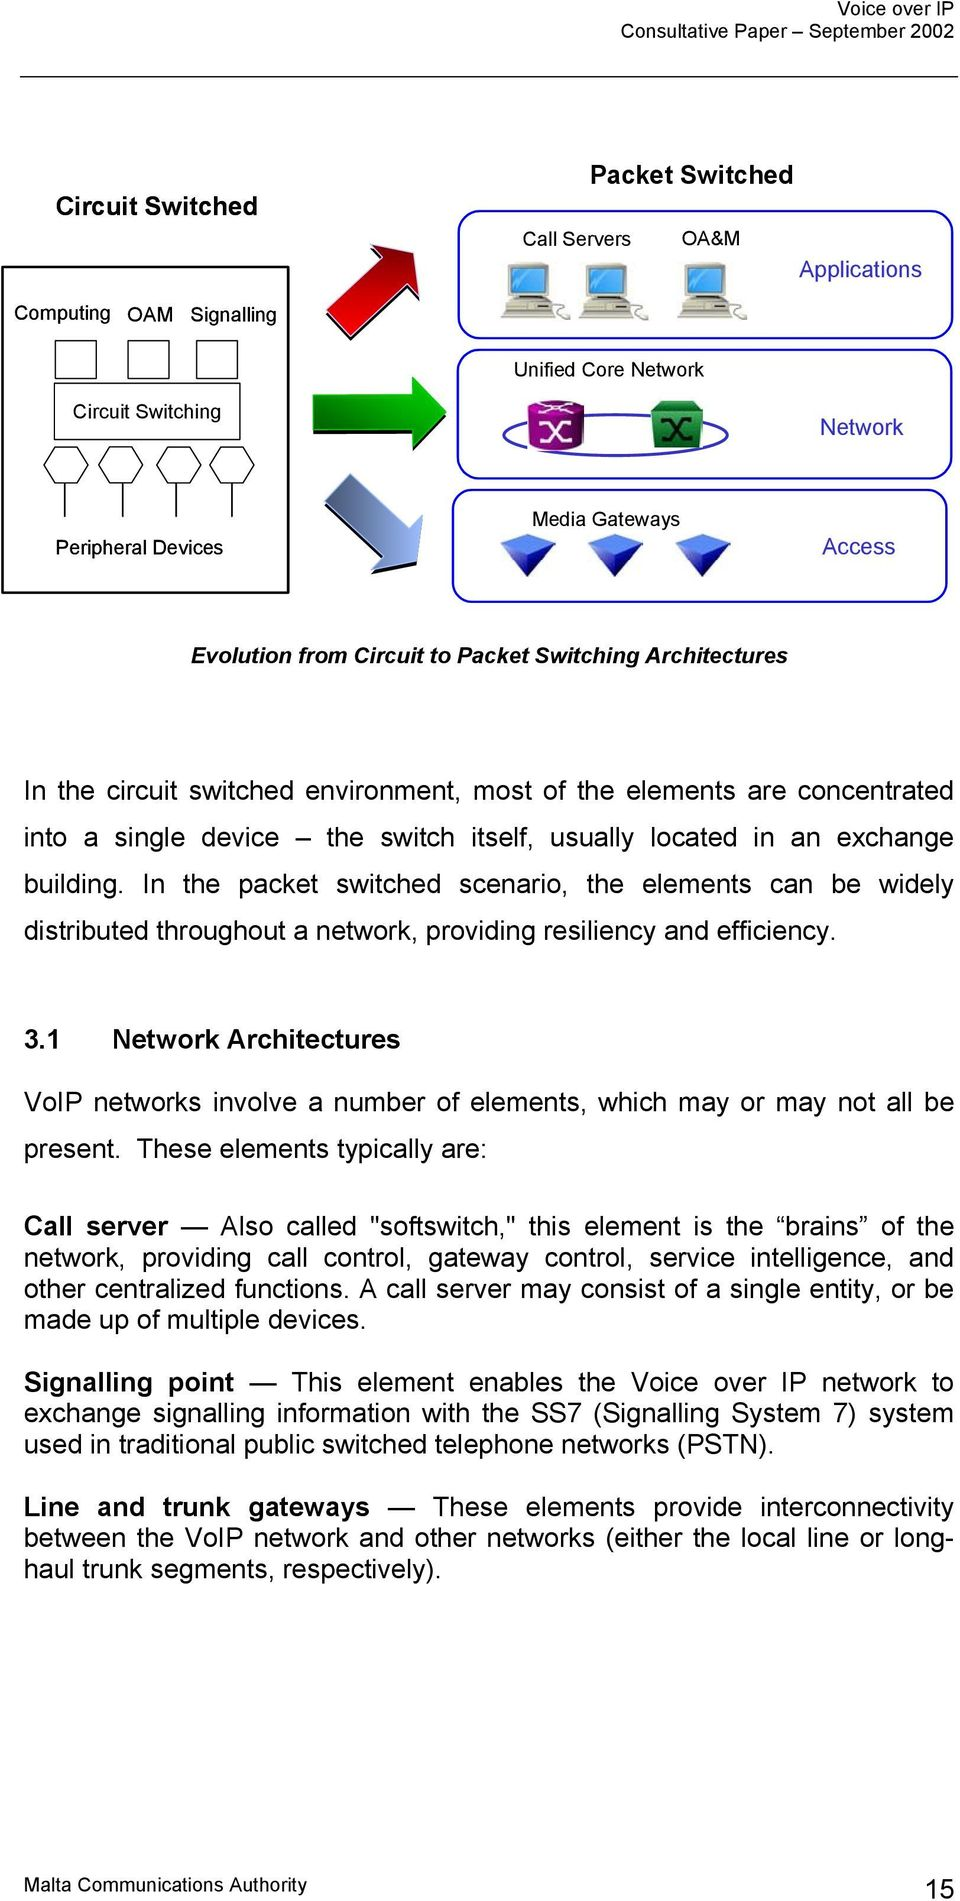 located in an exchange building. In the packet switched scenario, the elements can be widely distributed throughout a network, providing resiliency and efficiency. 3.